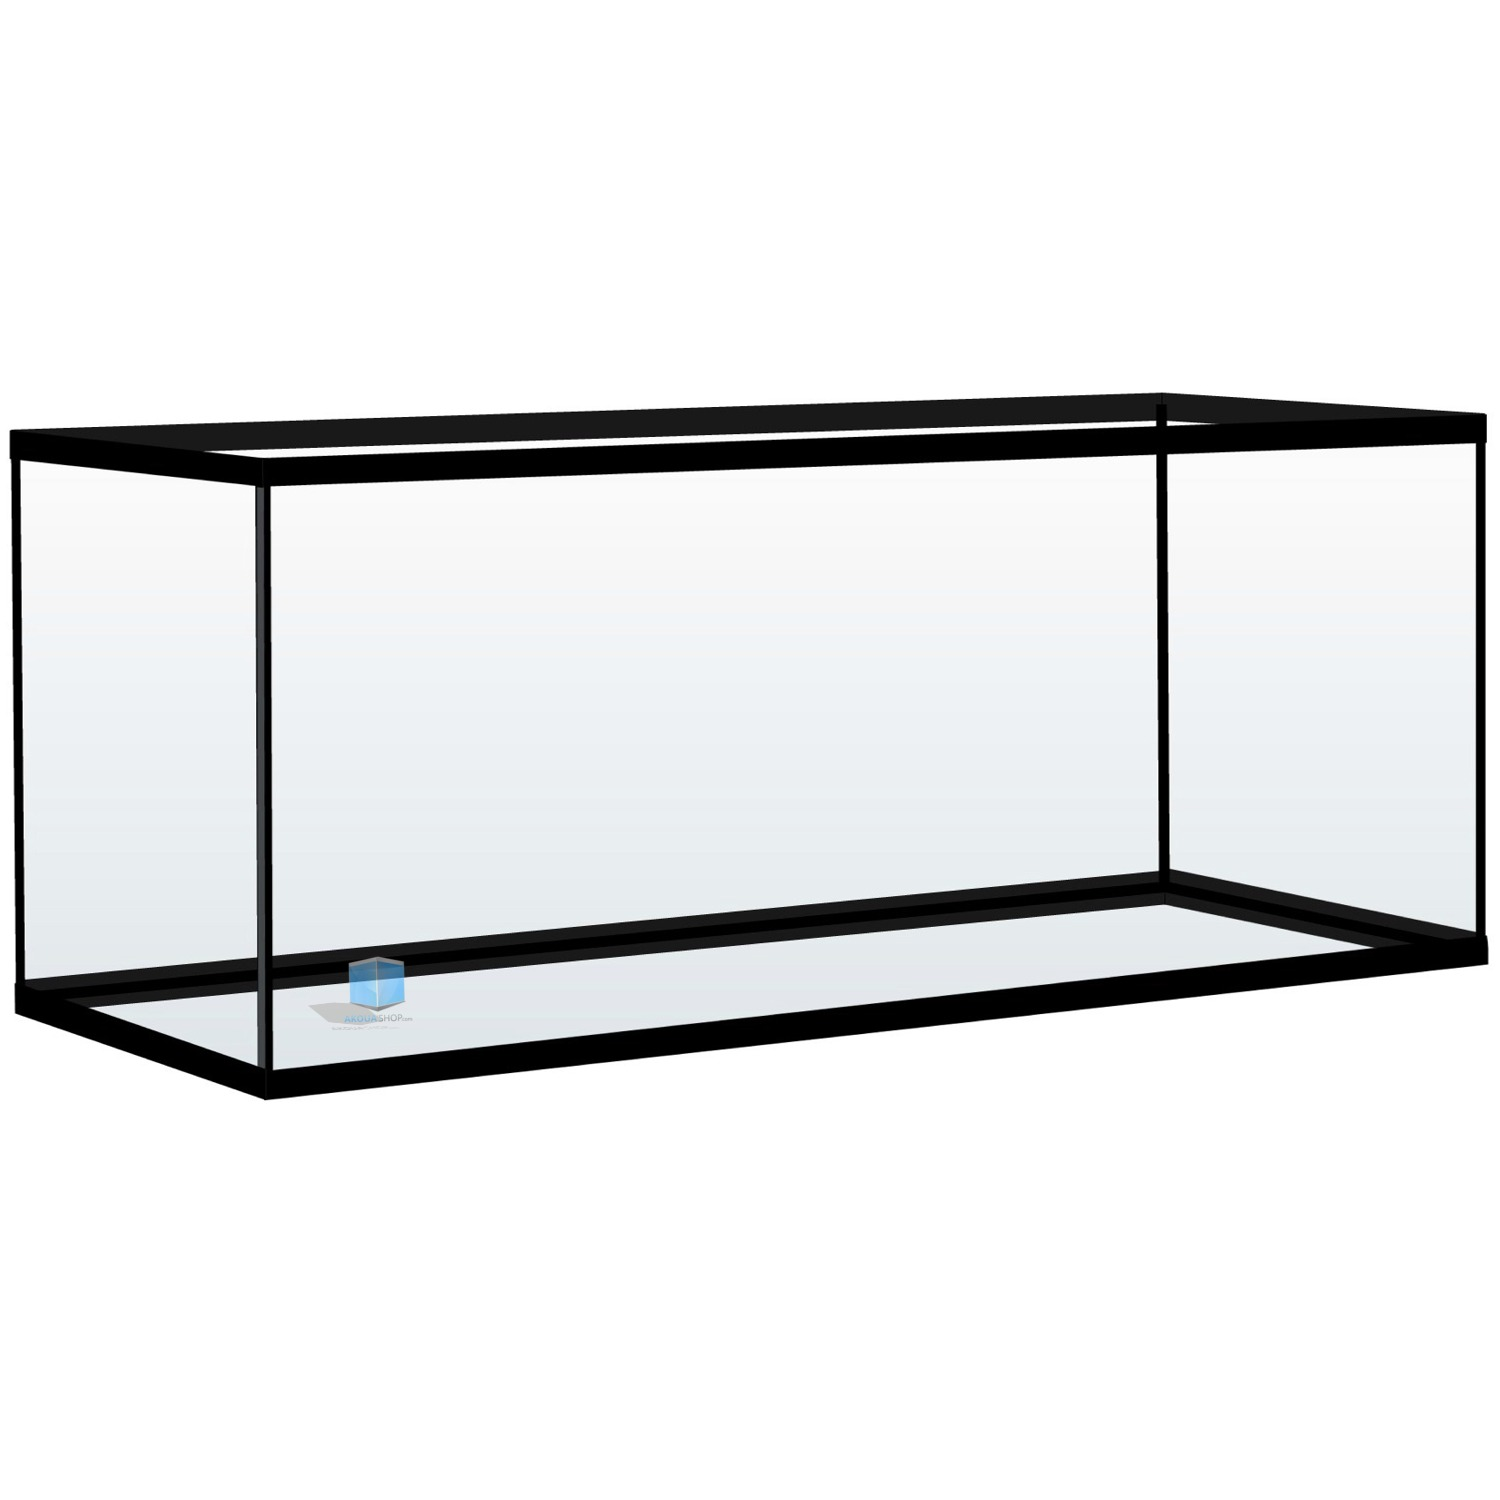 cuve d 39 aquarium nue 240l dim 120 x 40 x 50 cm en vente sur la boutique. Black Bedroom Furniture Sets. Home Design Ideas